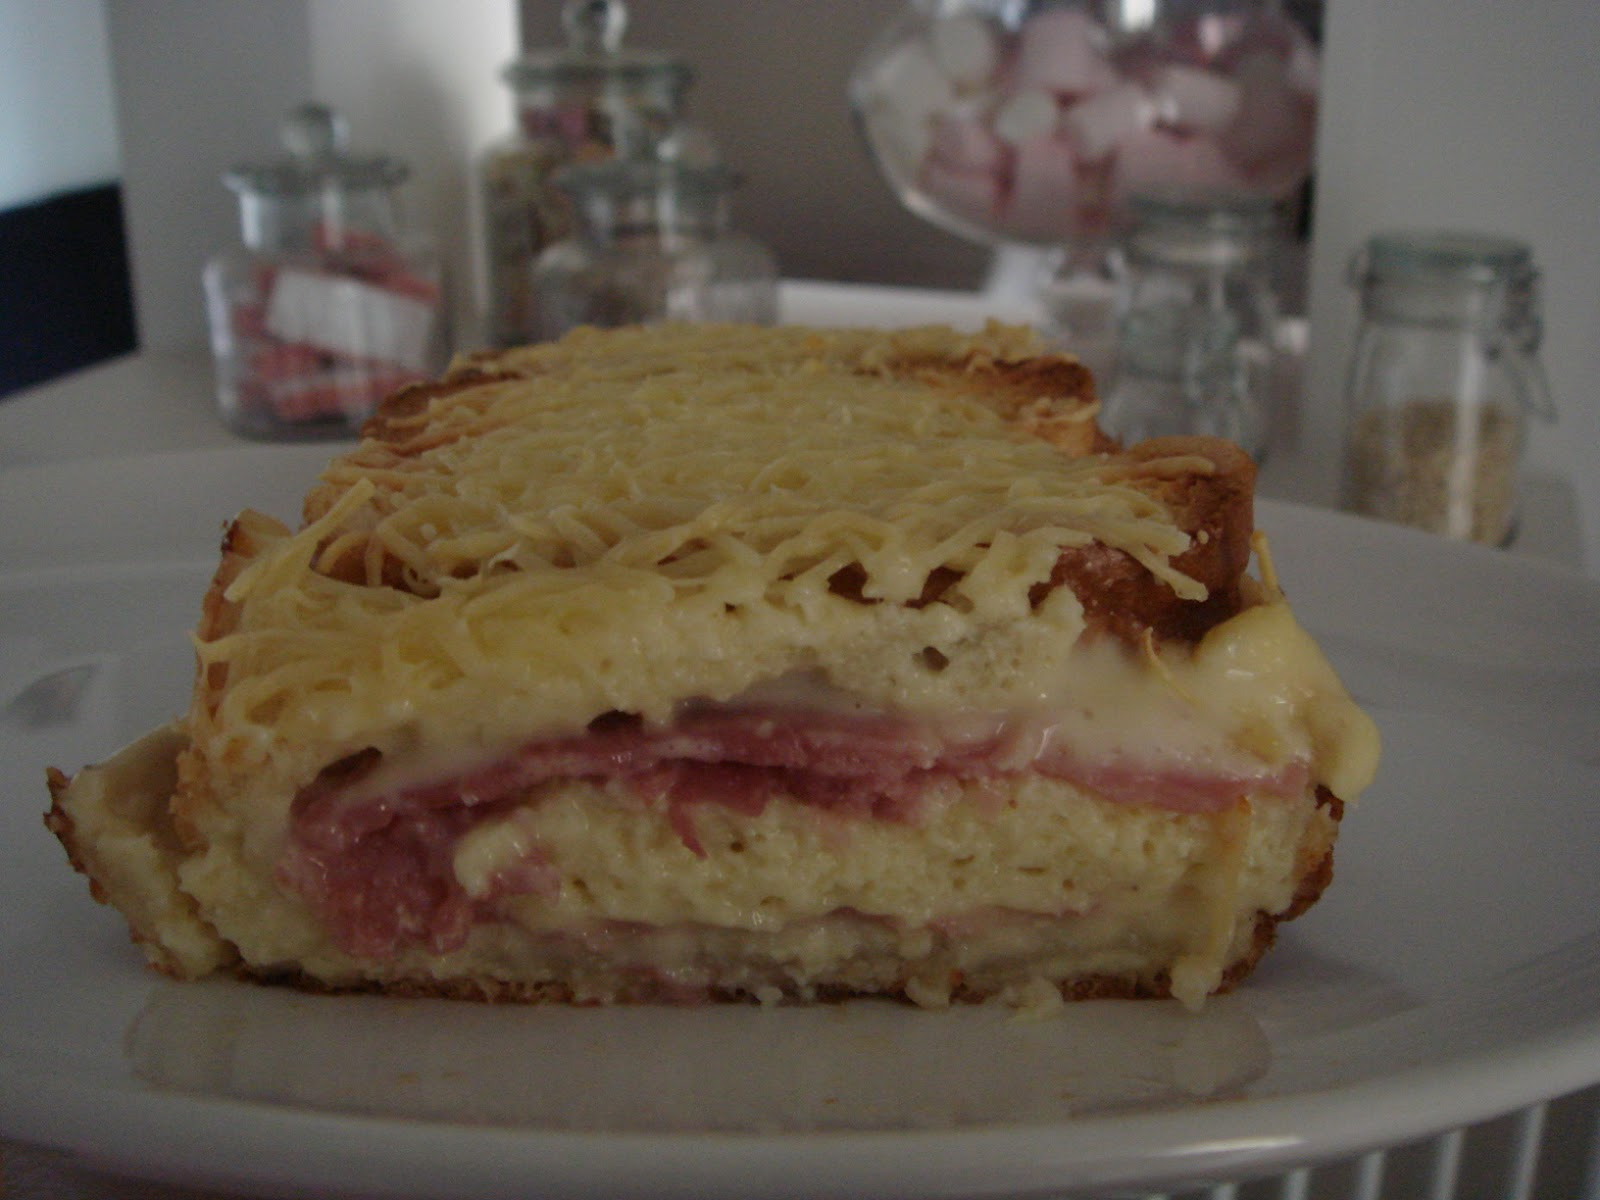 les recettes d 39 emilie cake croque monsieur. Black Bedroom Furniture Sets. Home Design Ideas